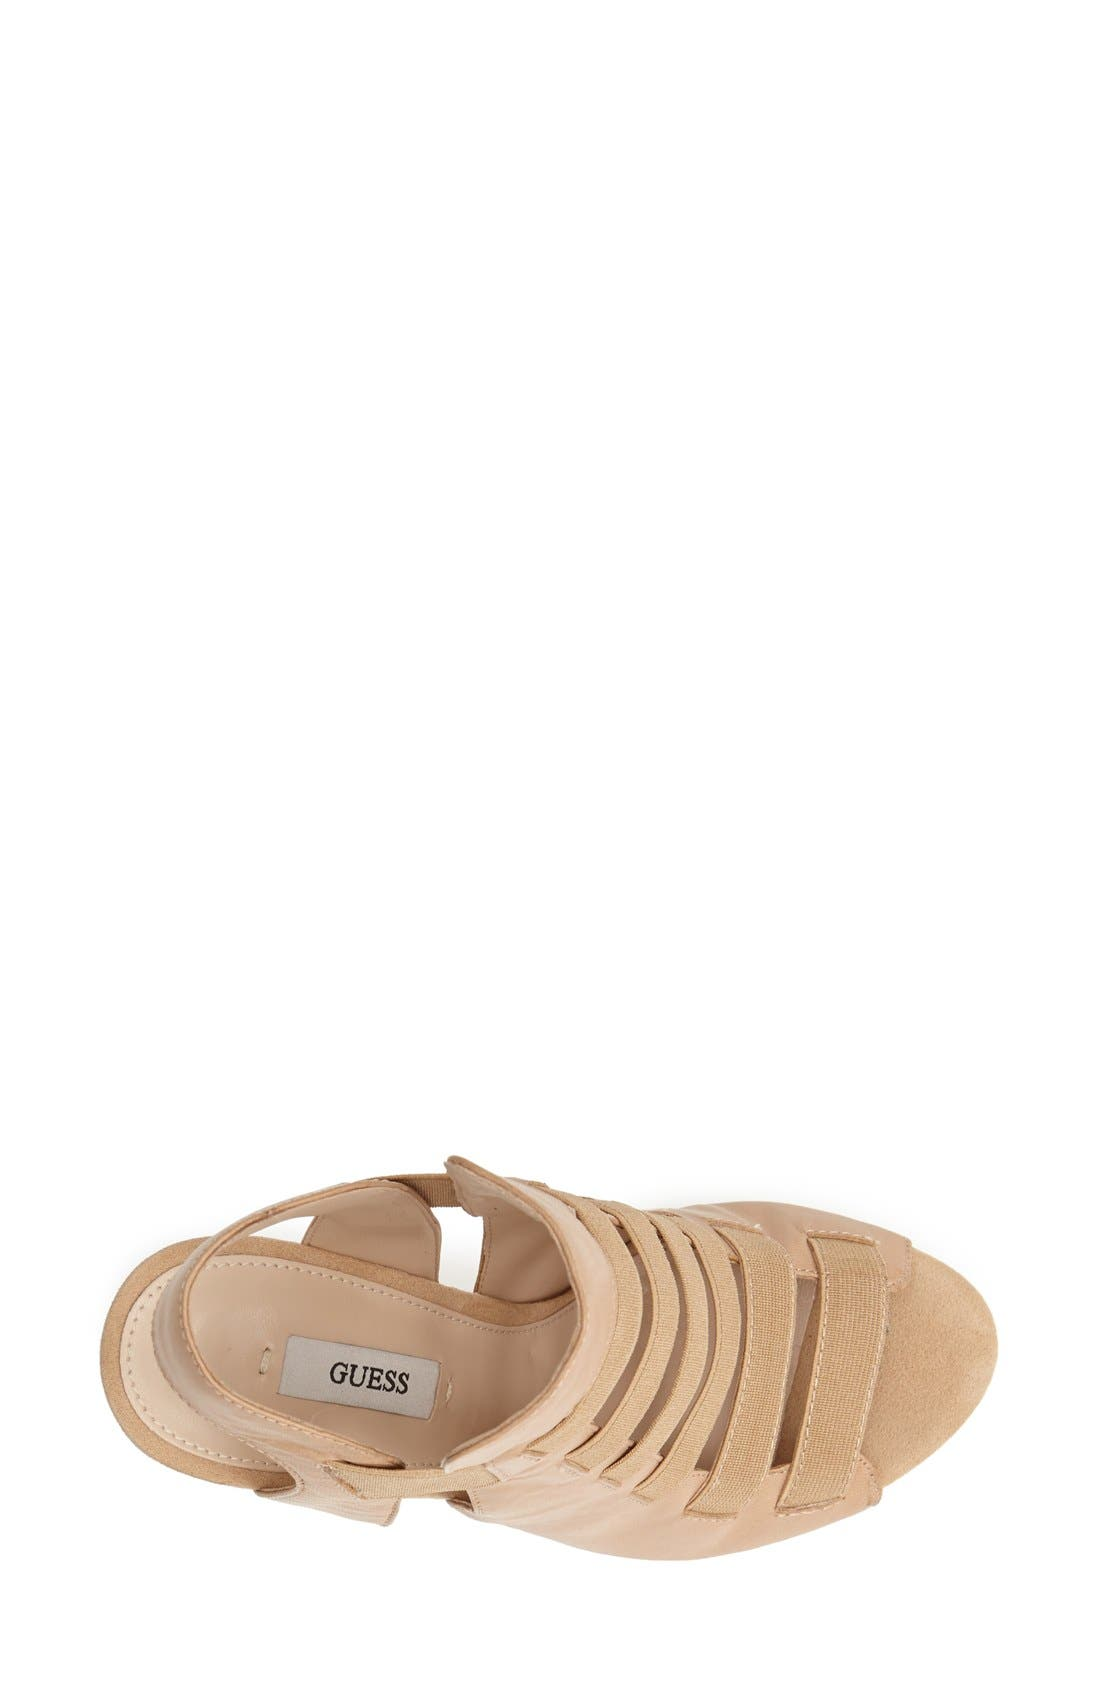 Alternate Image 3  - GUESS 'Chica' Strappy Sandal (Women)